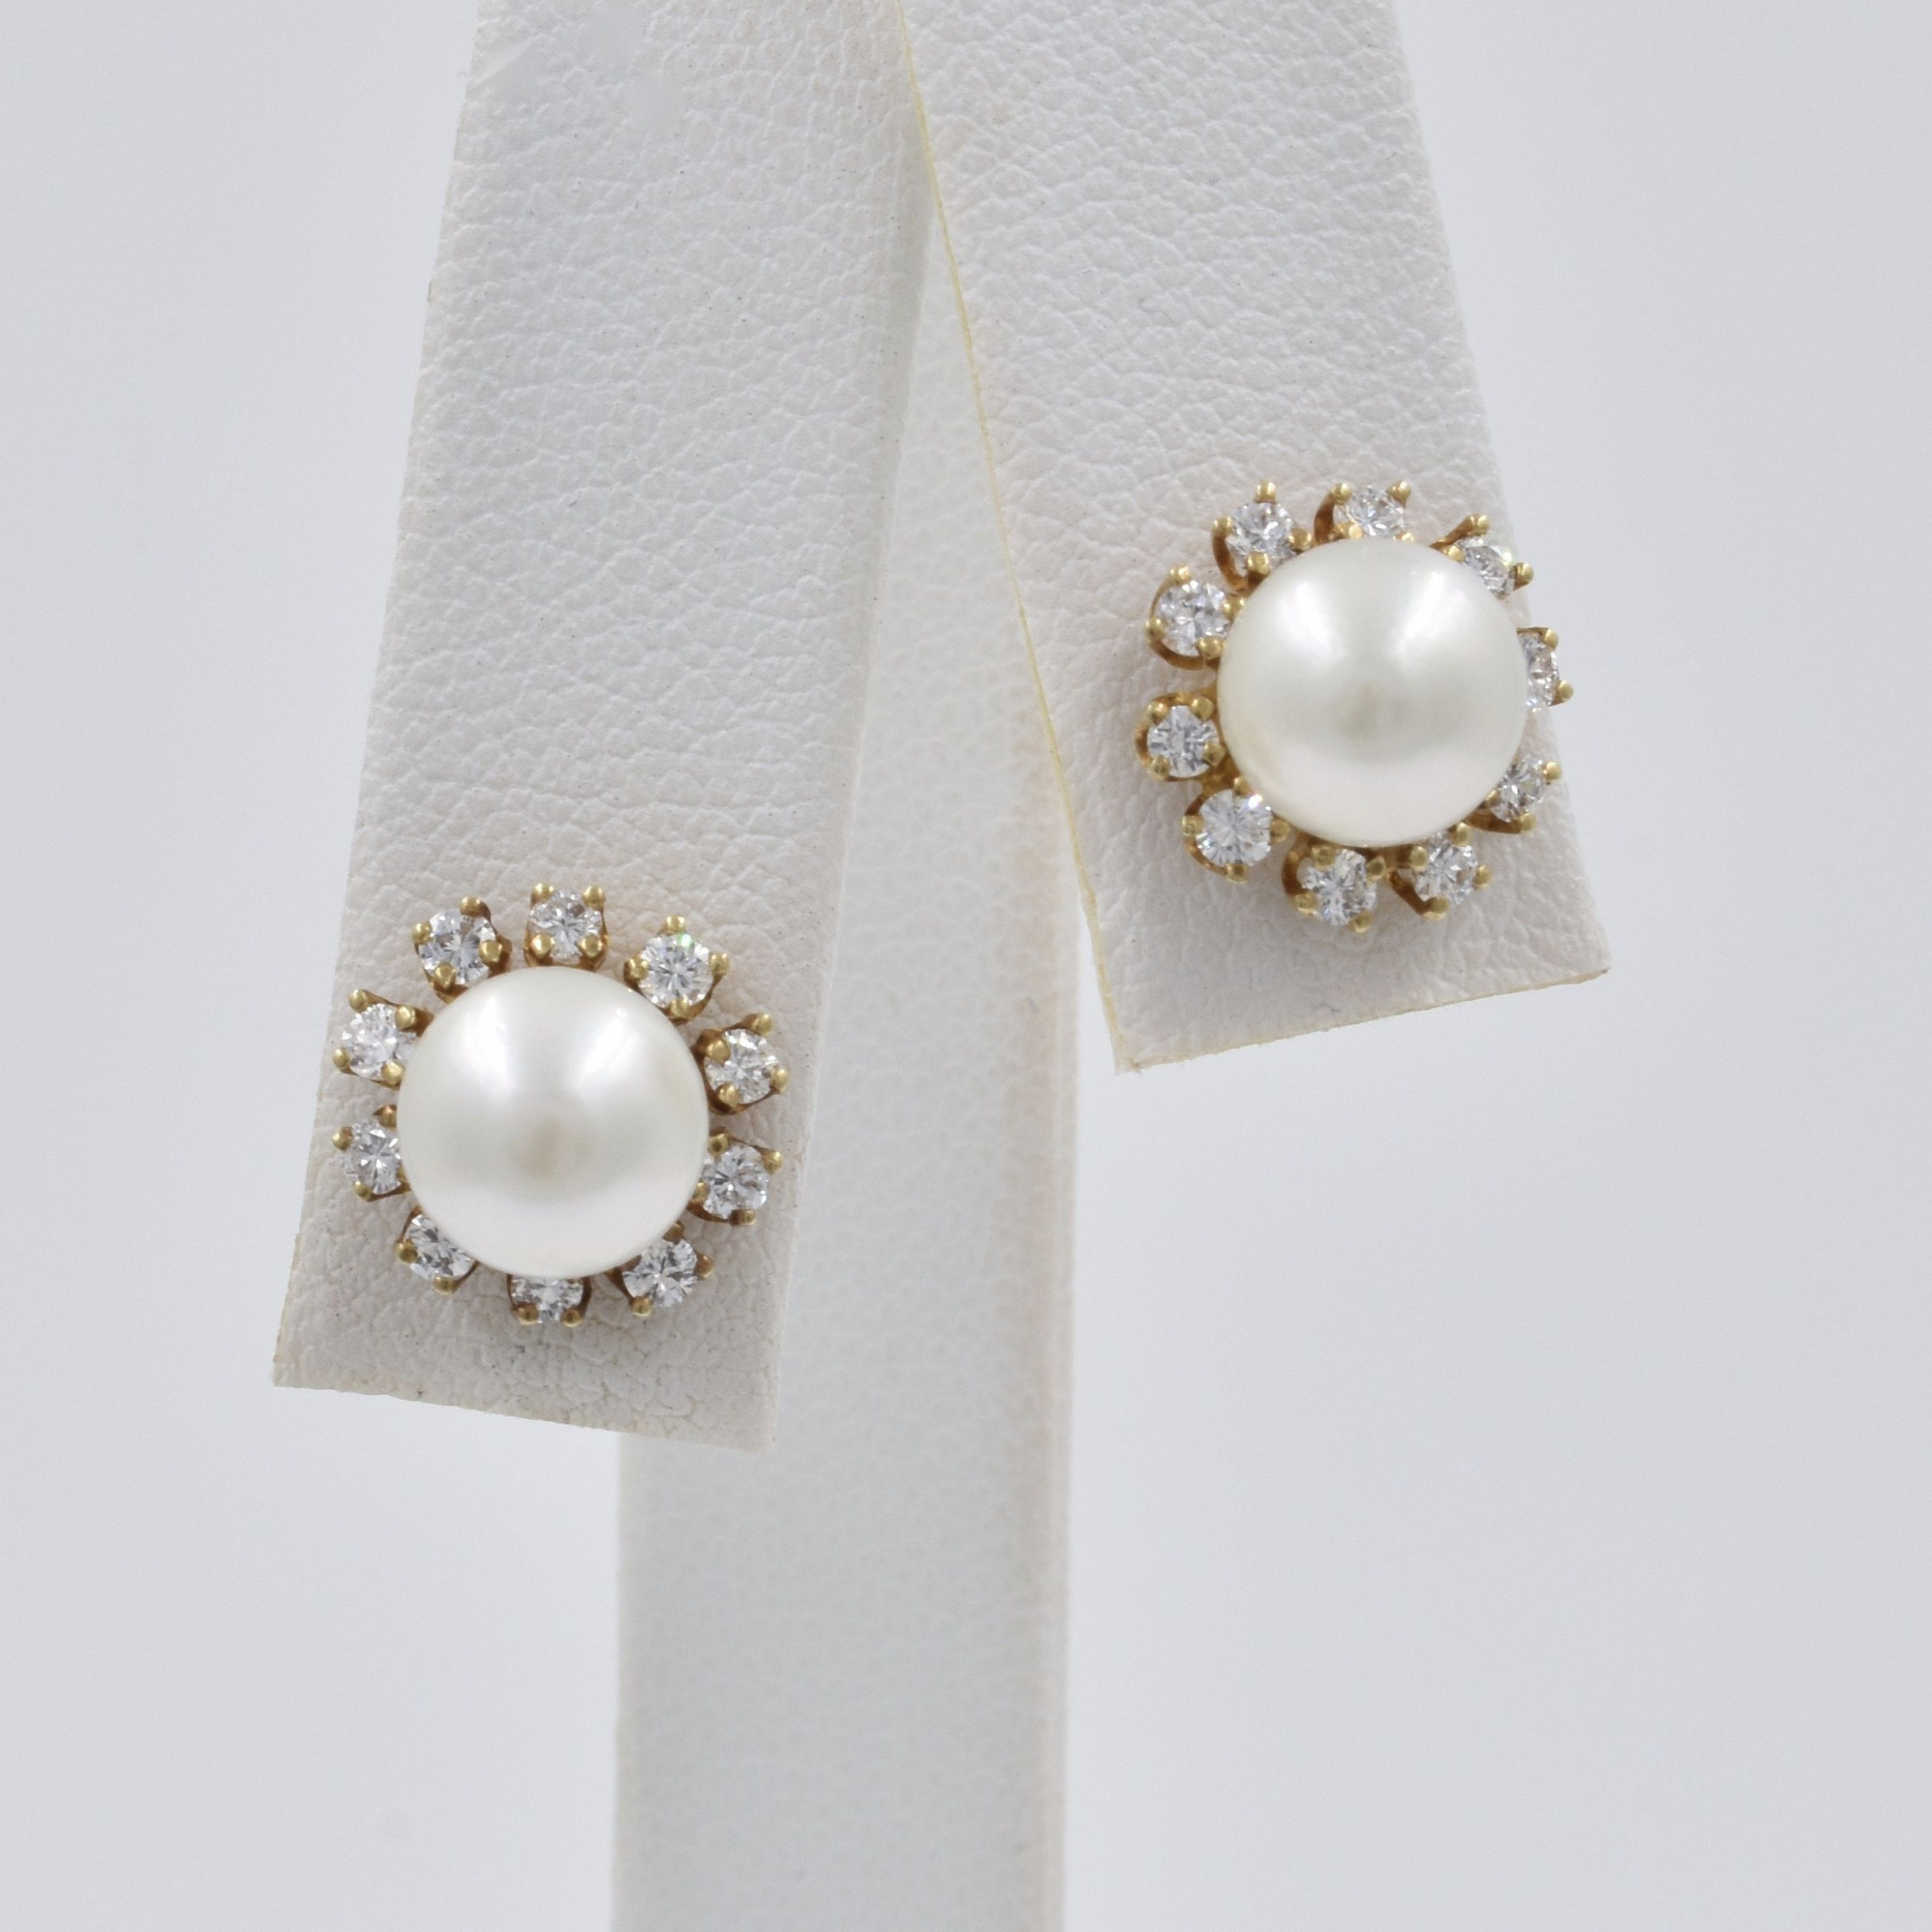 Vintage Estate 14k Yellow Gold Diamond Earring Jackets Pearl Studs Included Bridal Earrings Wedding